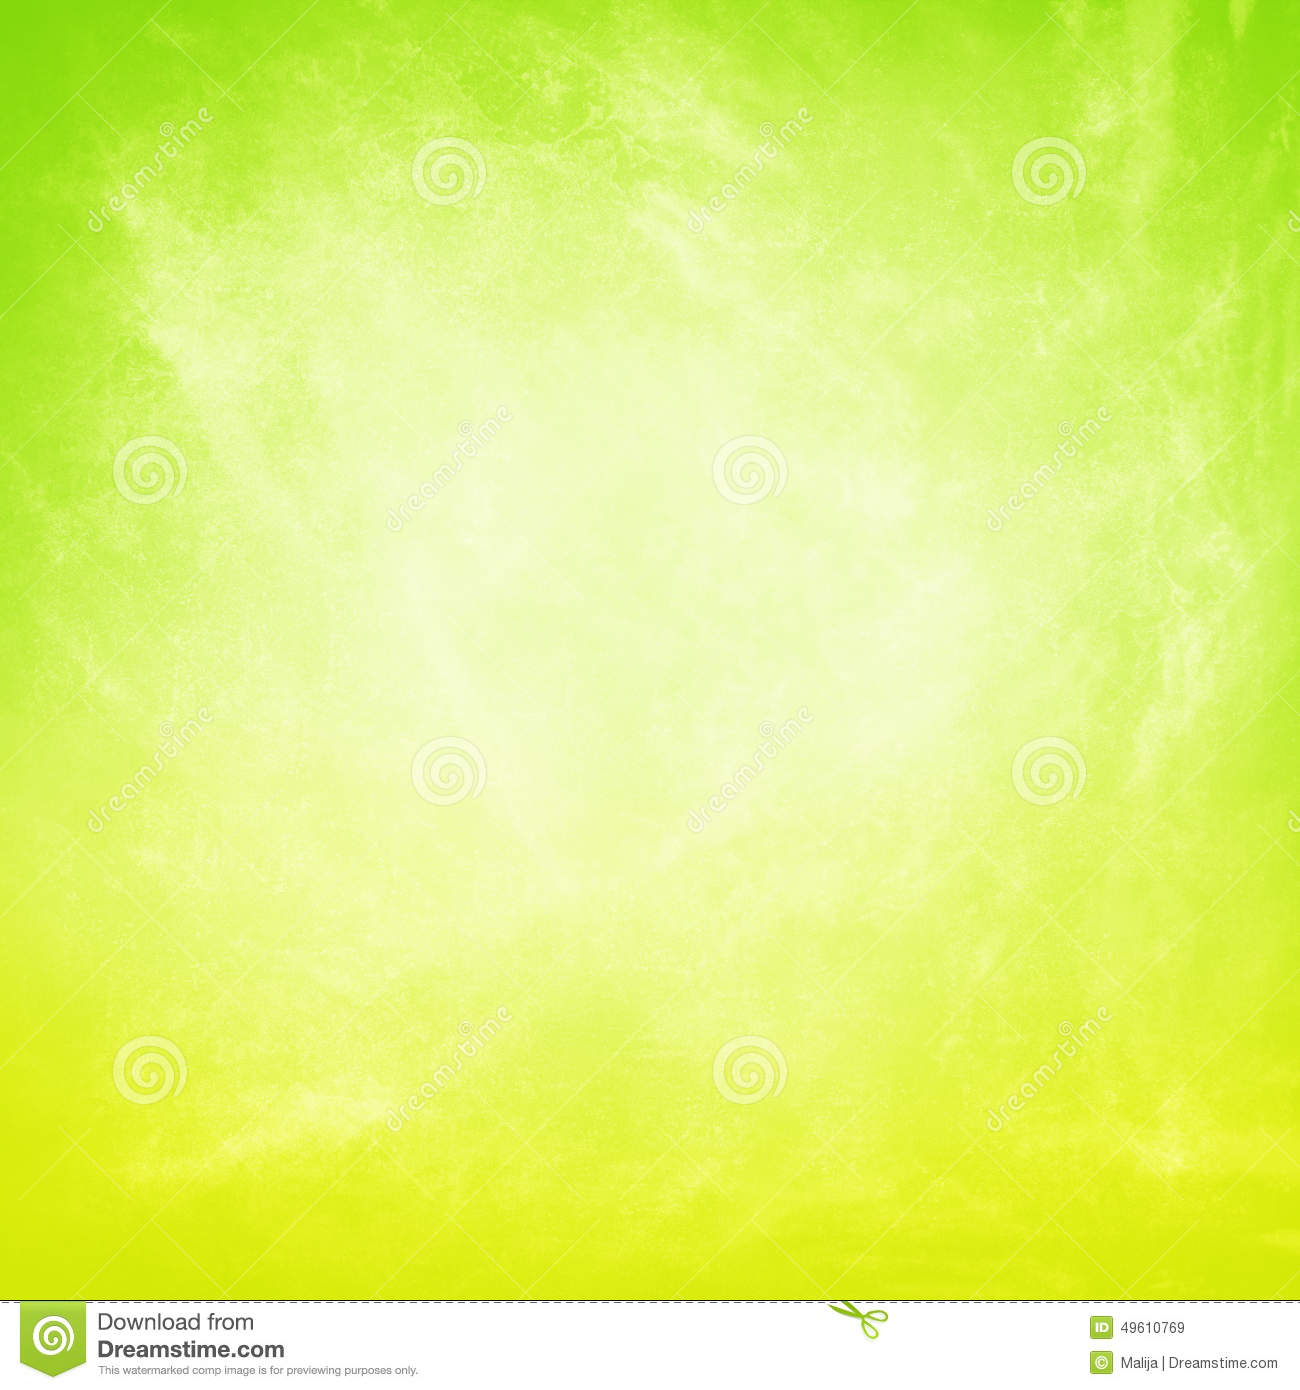 Dating site with green background